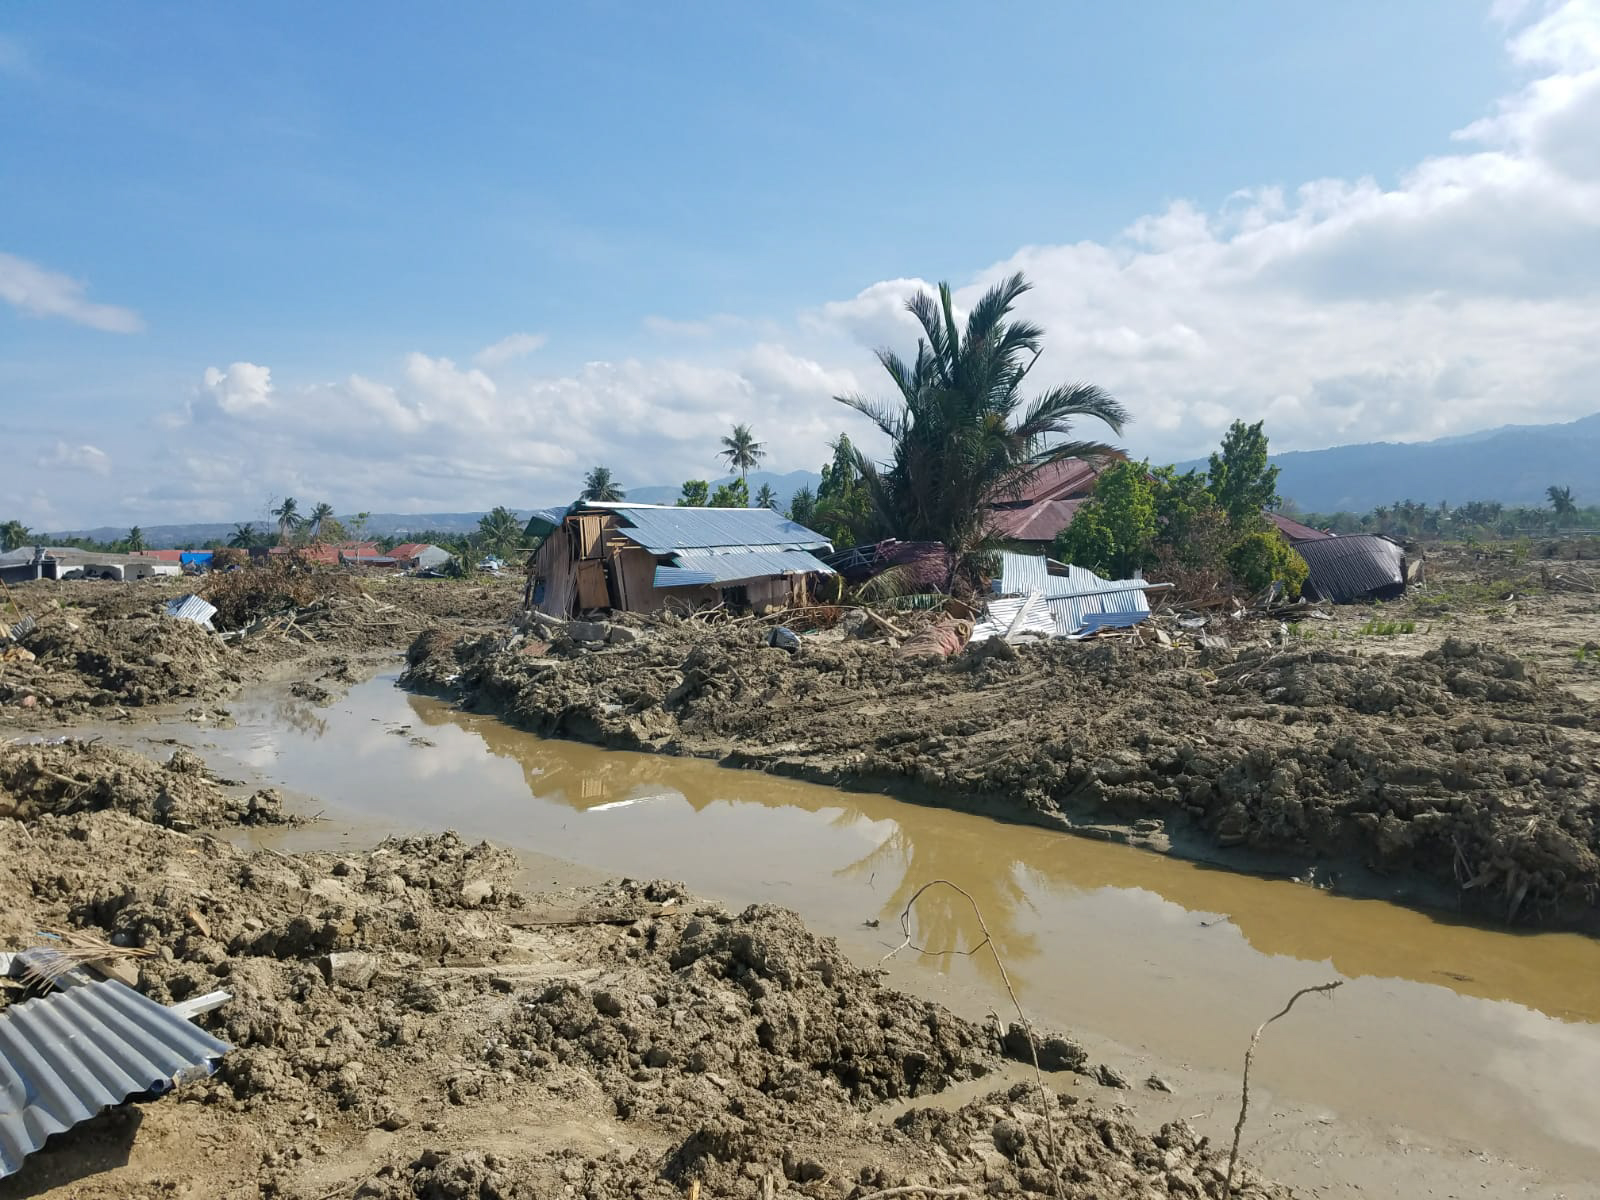 Devastation in Palu, Indonesia, is pictured on October 9, 2018. Responding in the area are members of the  Muhammadiyah Disaster Management Center, which has been conducting search and rescue in the days since the earthquake and tsunami struck, as well as medical outreach, shelter care and food distribution. Direct Relief is supporting MDMC with funding to continue their critical work in the region as recovery begins. (Photo courtesy of MDMC)